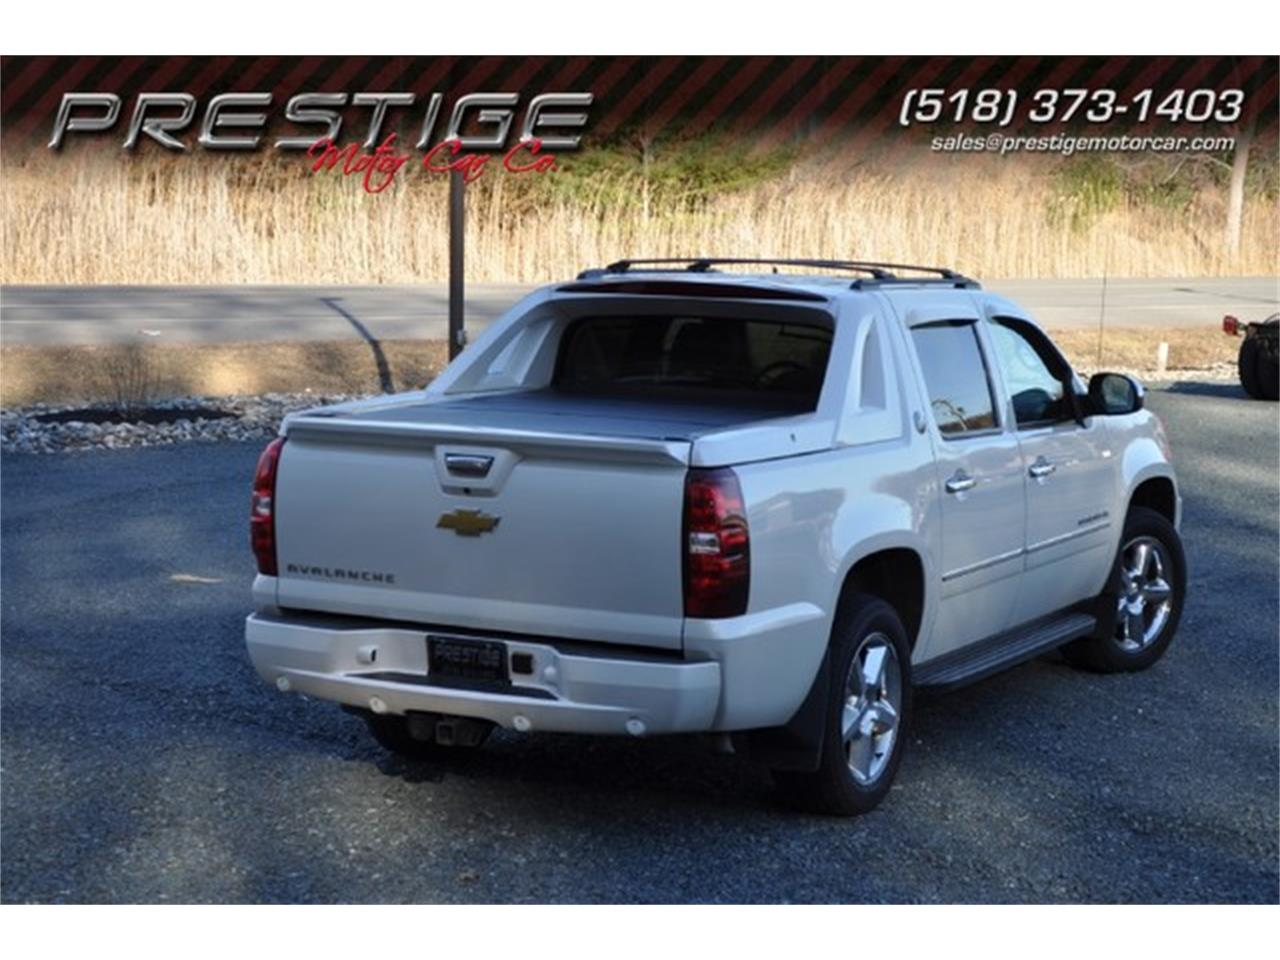 2013 chevrolet avalanche for sale cc for Prestige motors clifton park